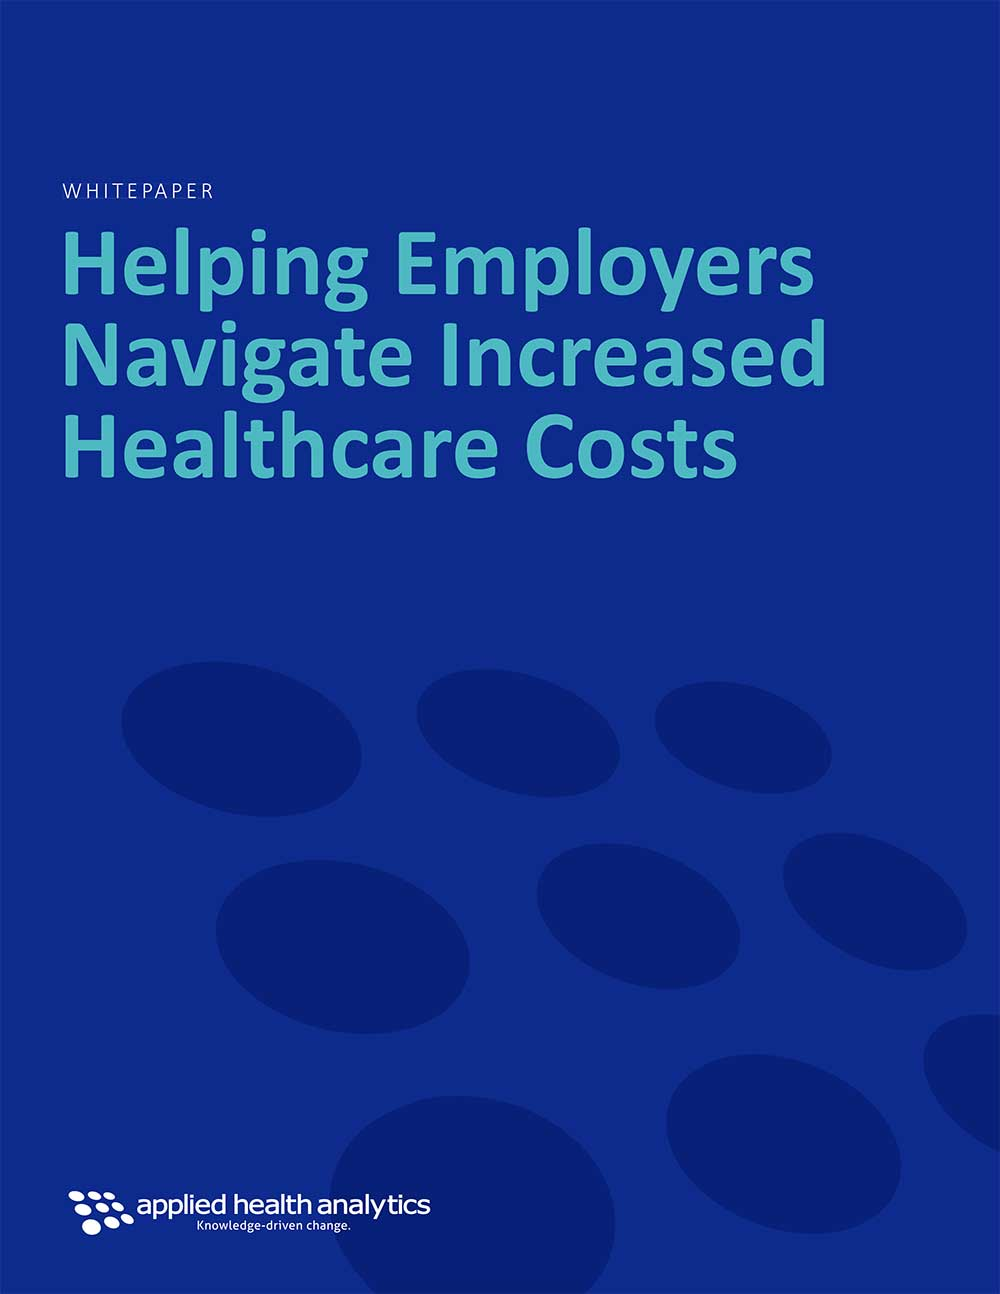 Applied Health Analytics Whitepaper Helping Employers Navigate Increased Healthcare Costs